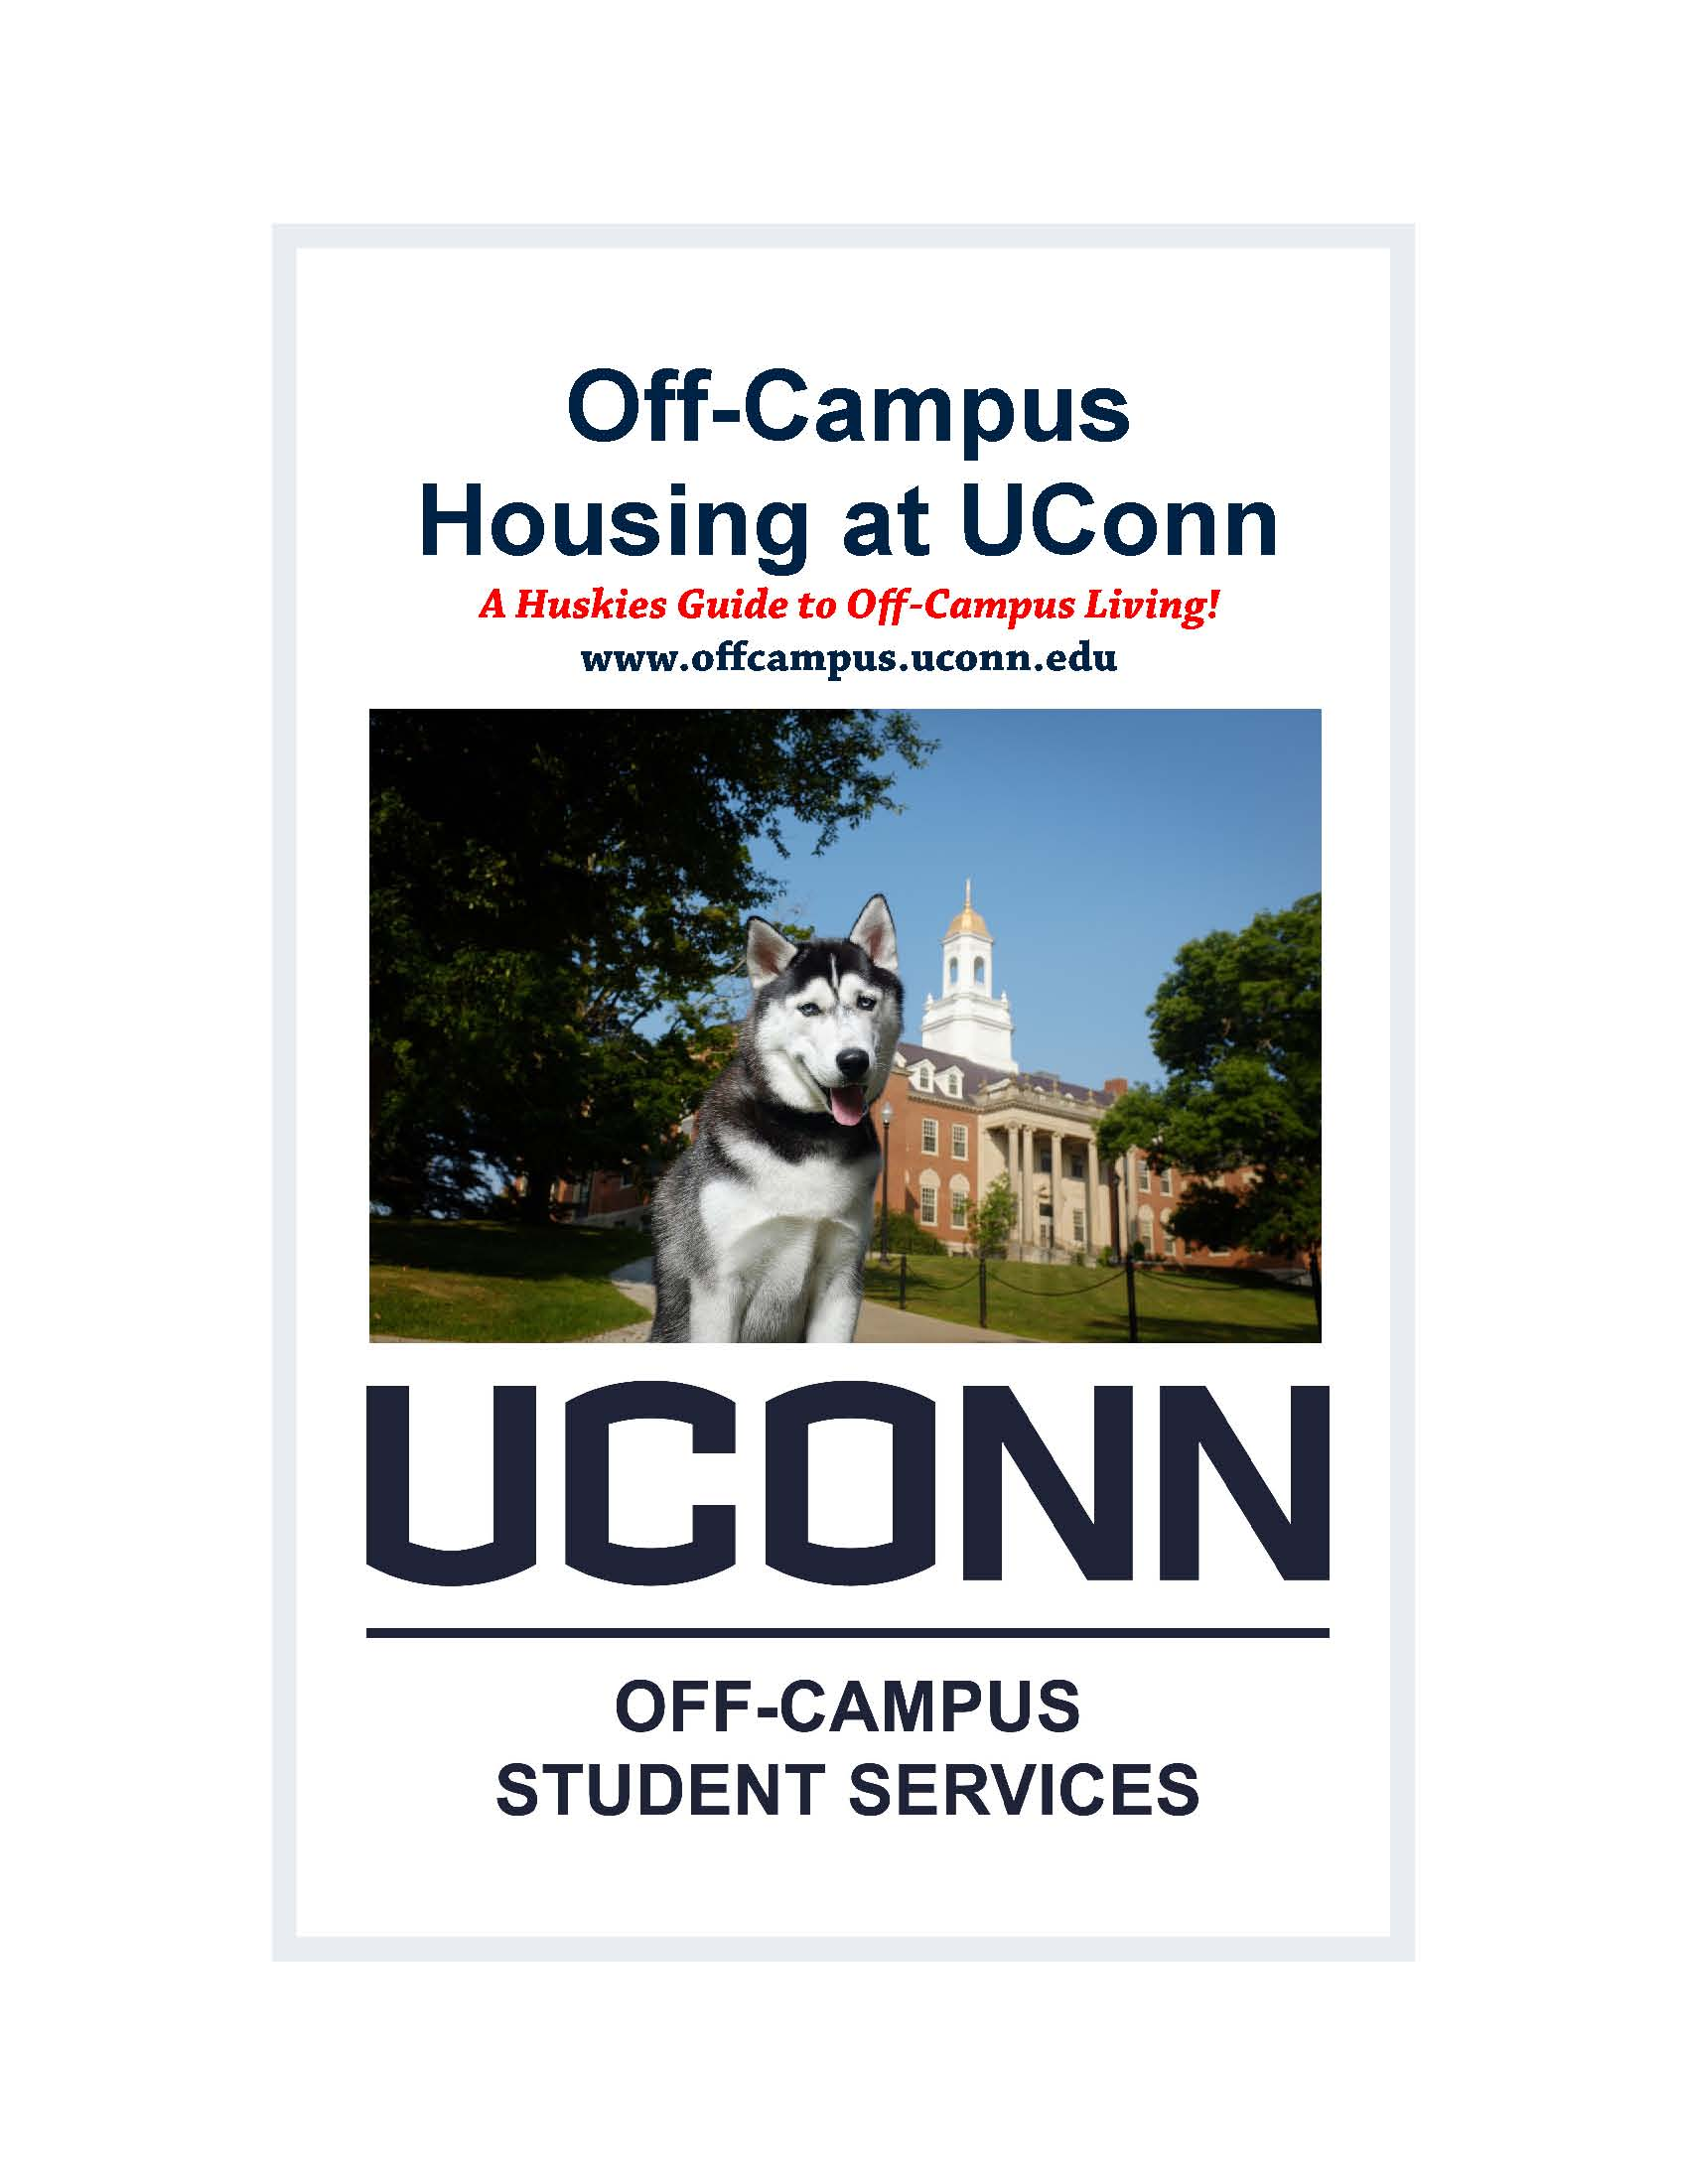 Off-Campus Housing Guide